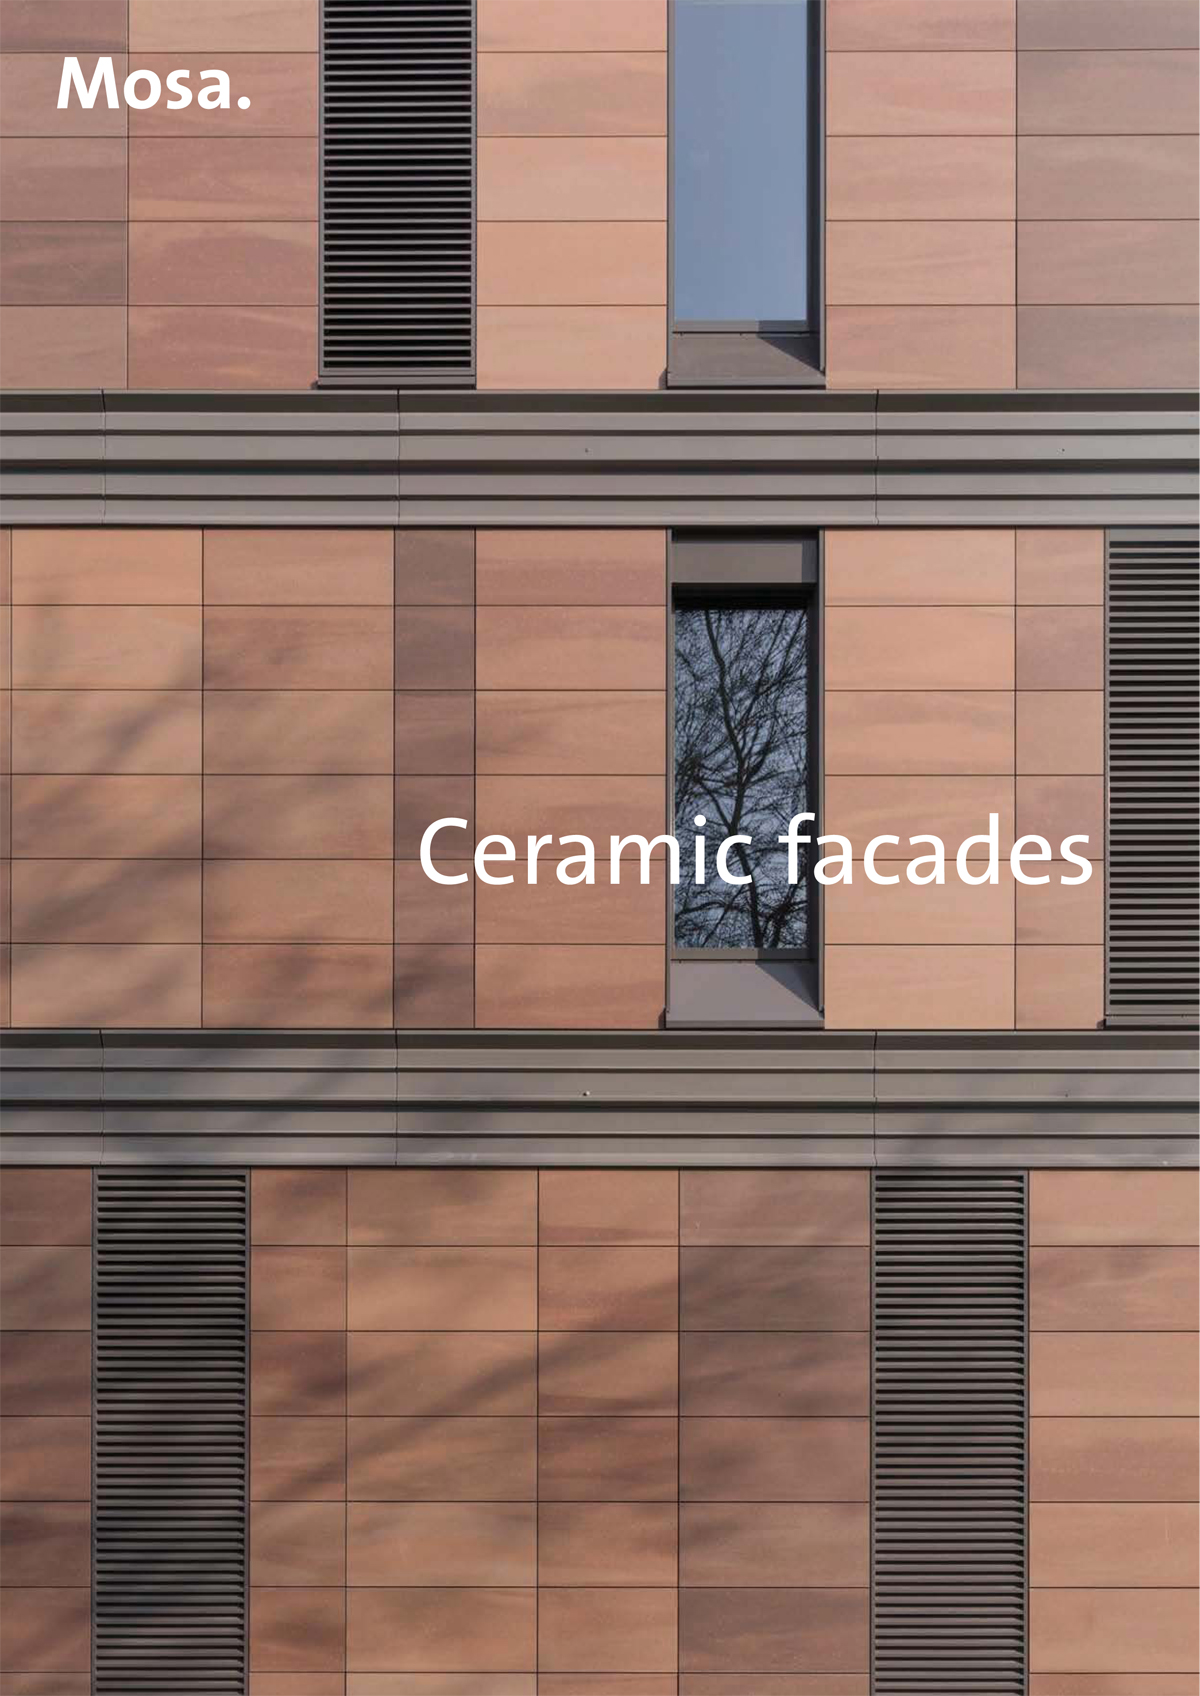 Mosa-Ceramic-facades-brochure-cover